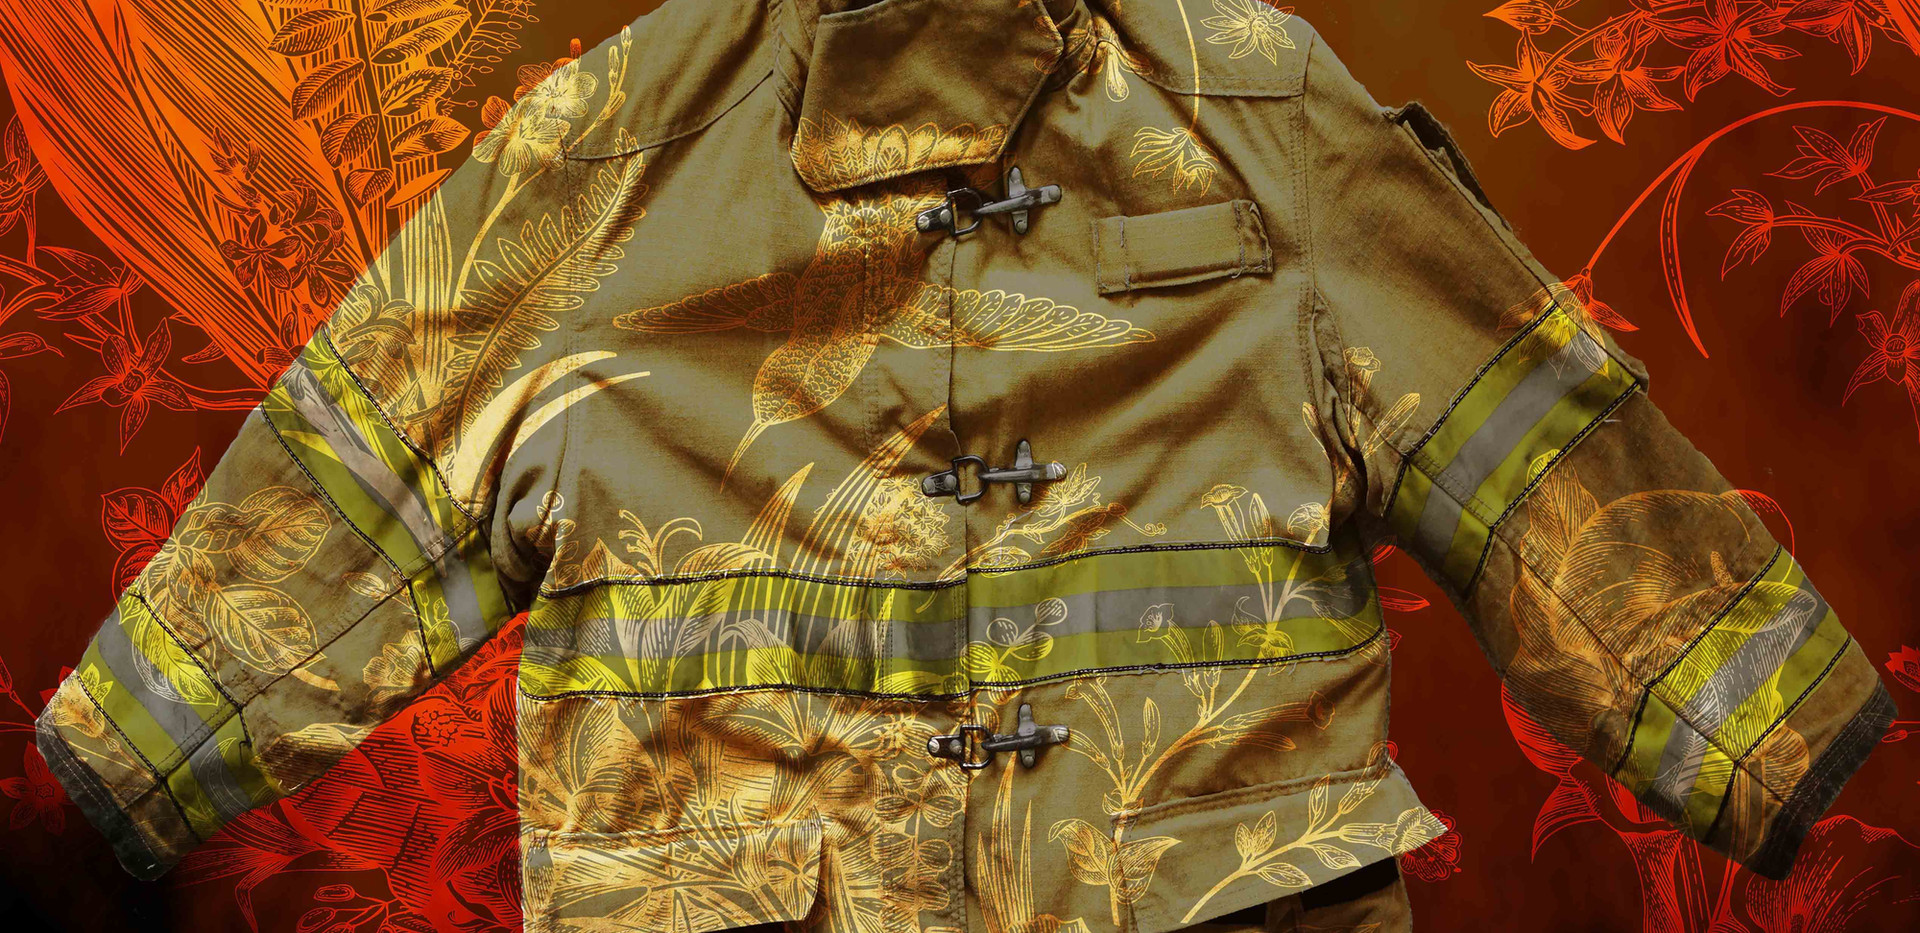 The Firefighter #4